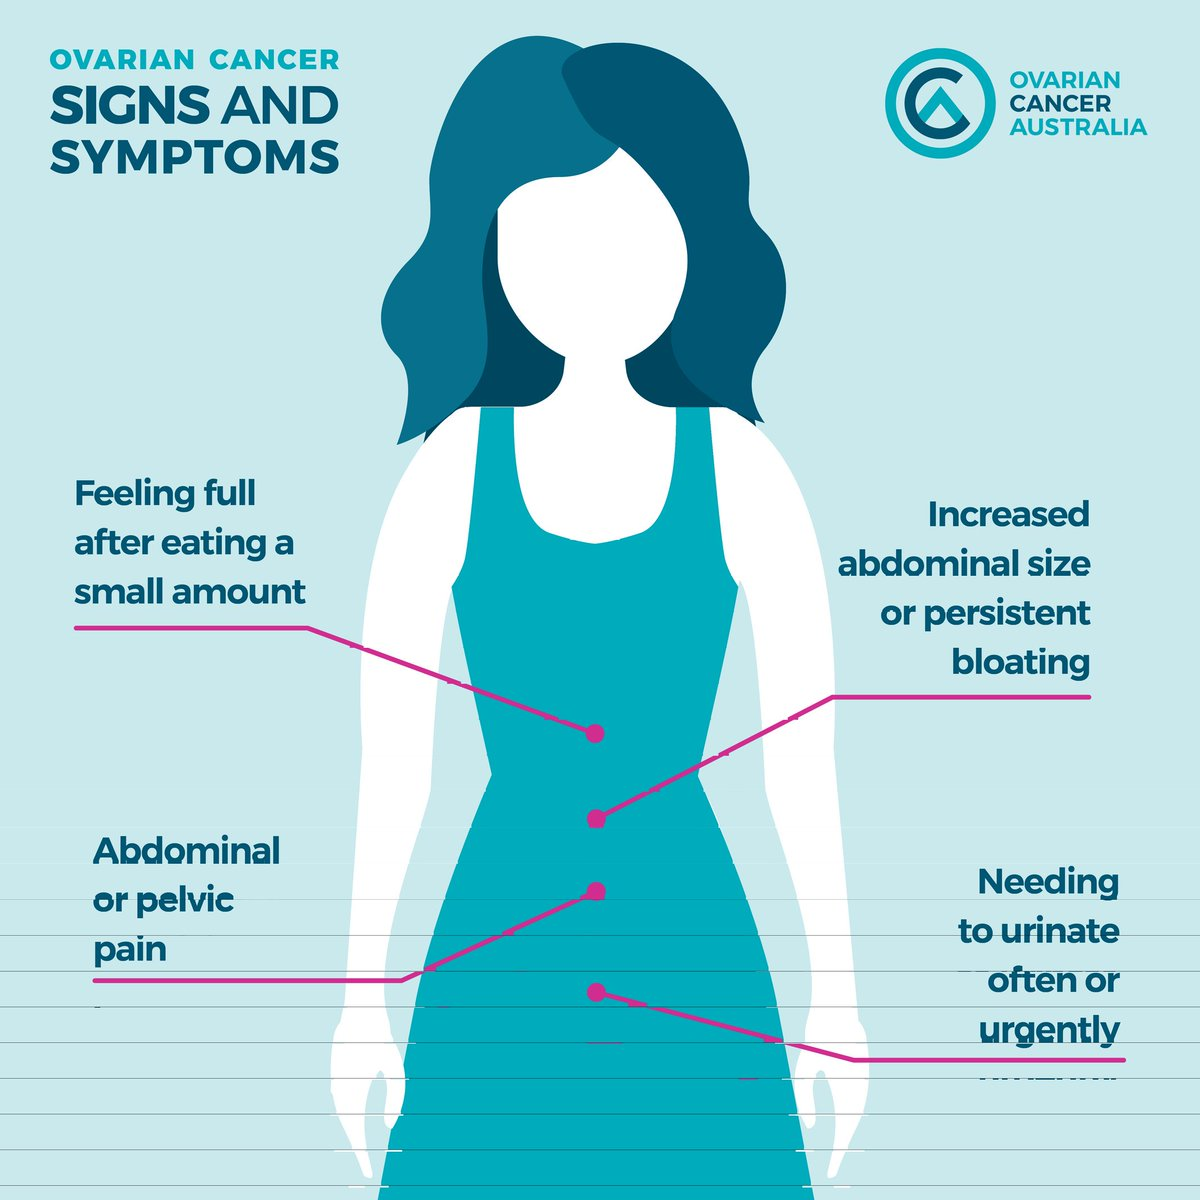 Ovarian Cancer Aust On Twitter There Is Currently No Screening Test For Ovariancancer In That Absence It S Vital That You Know The Main Signs And Symptoms Of This Deadly Disease Go